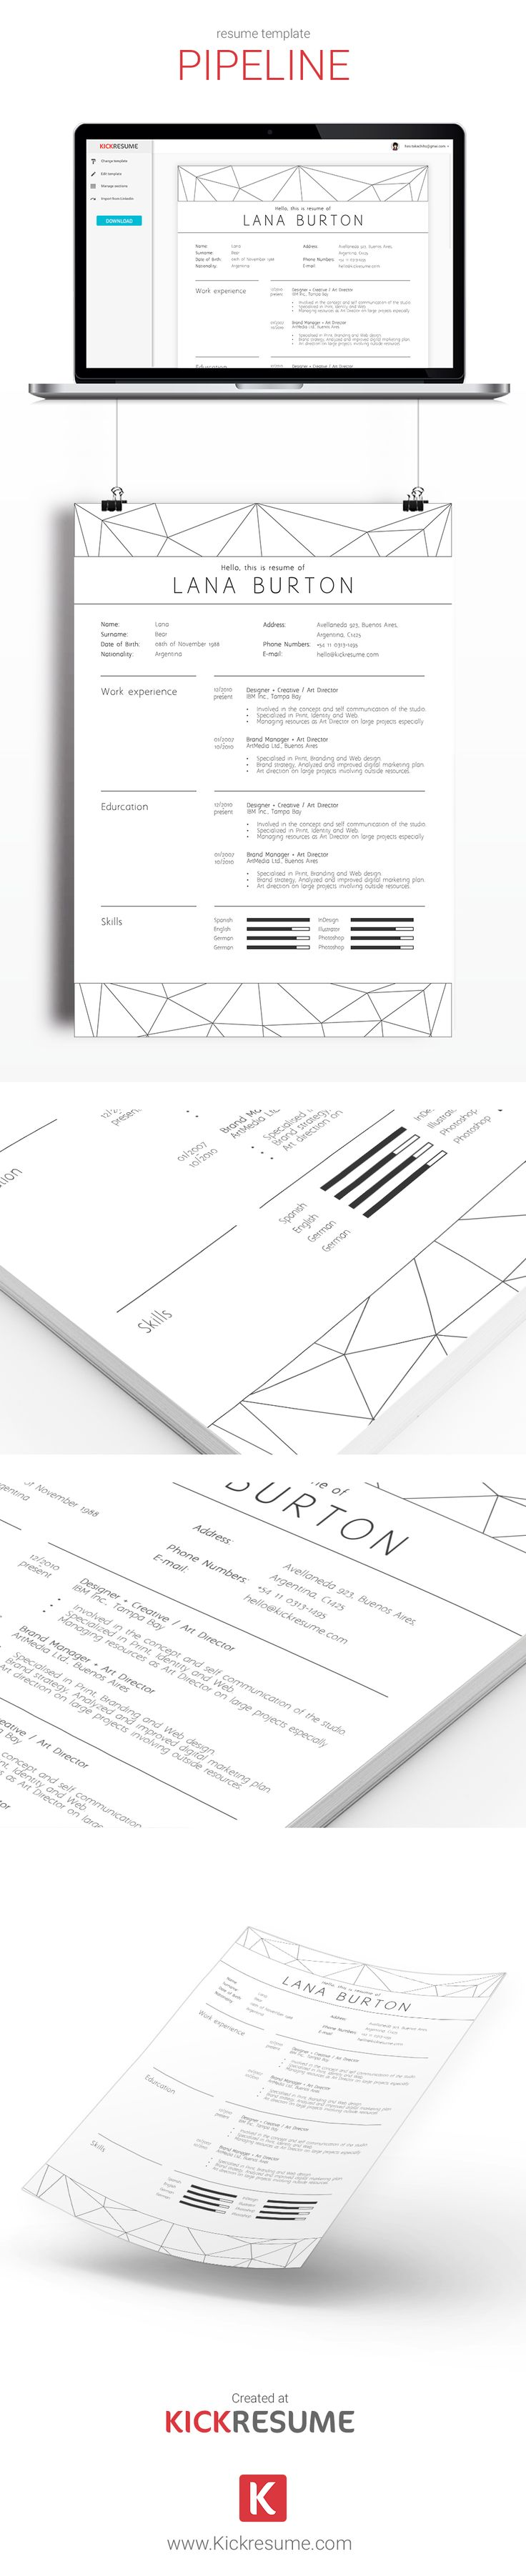 18 best images about Kickresume Templates Gallery (Resume samples ...